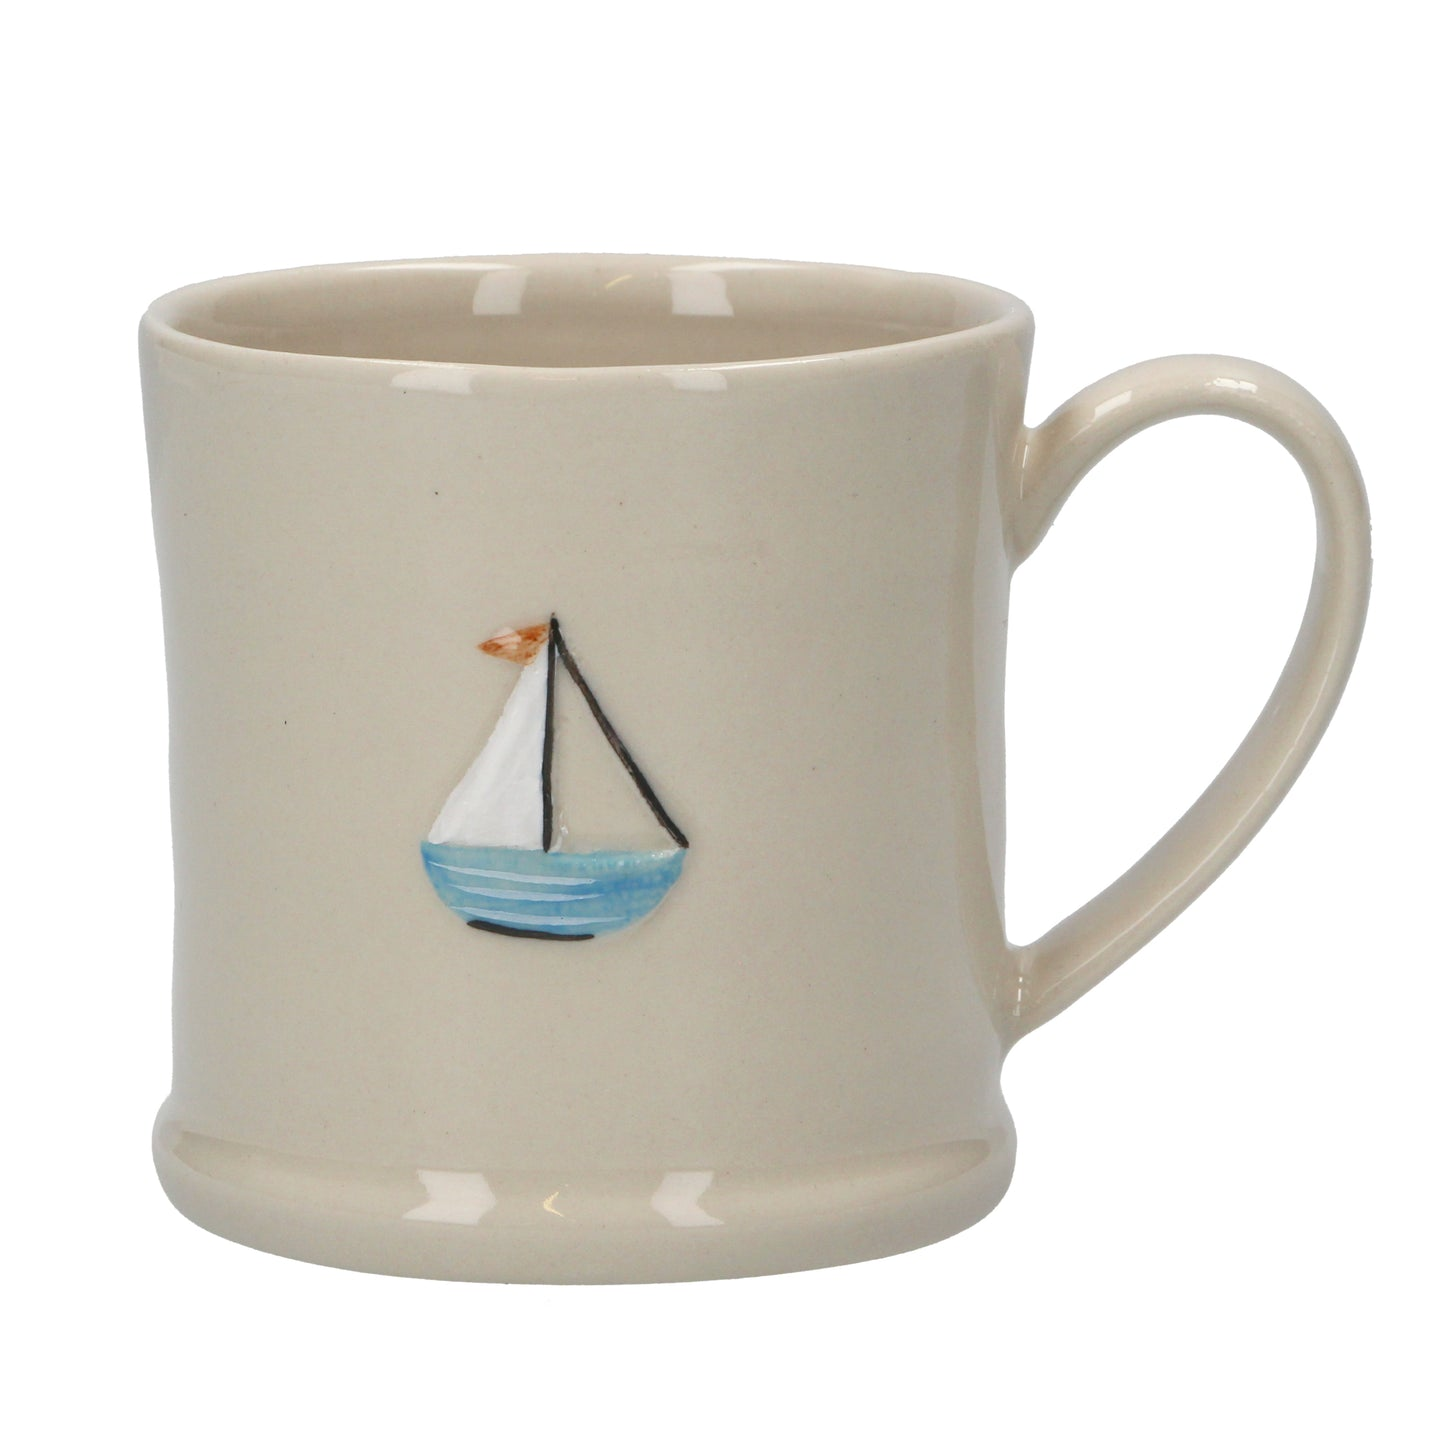 Ceramic Mini Mug With Sail Boat - Quirky Giftz Ltd